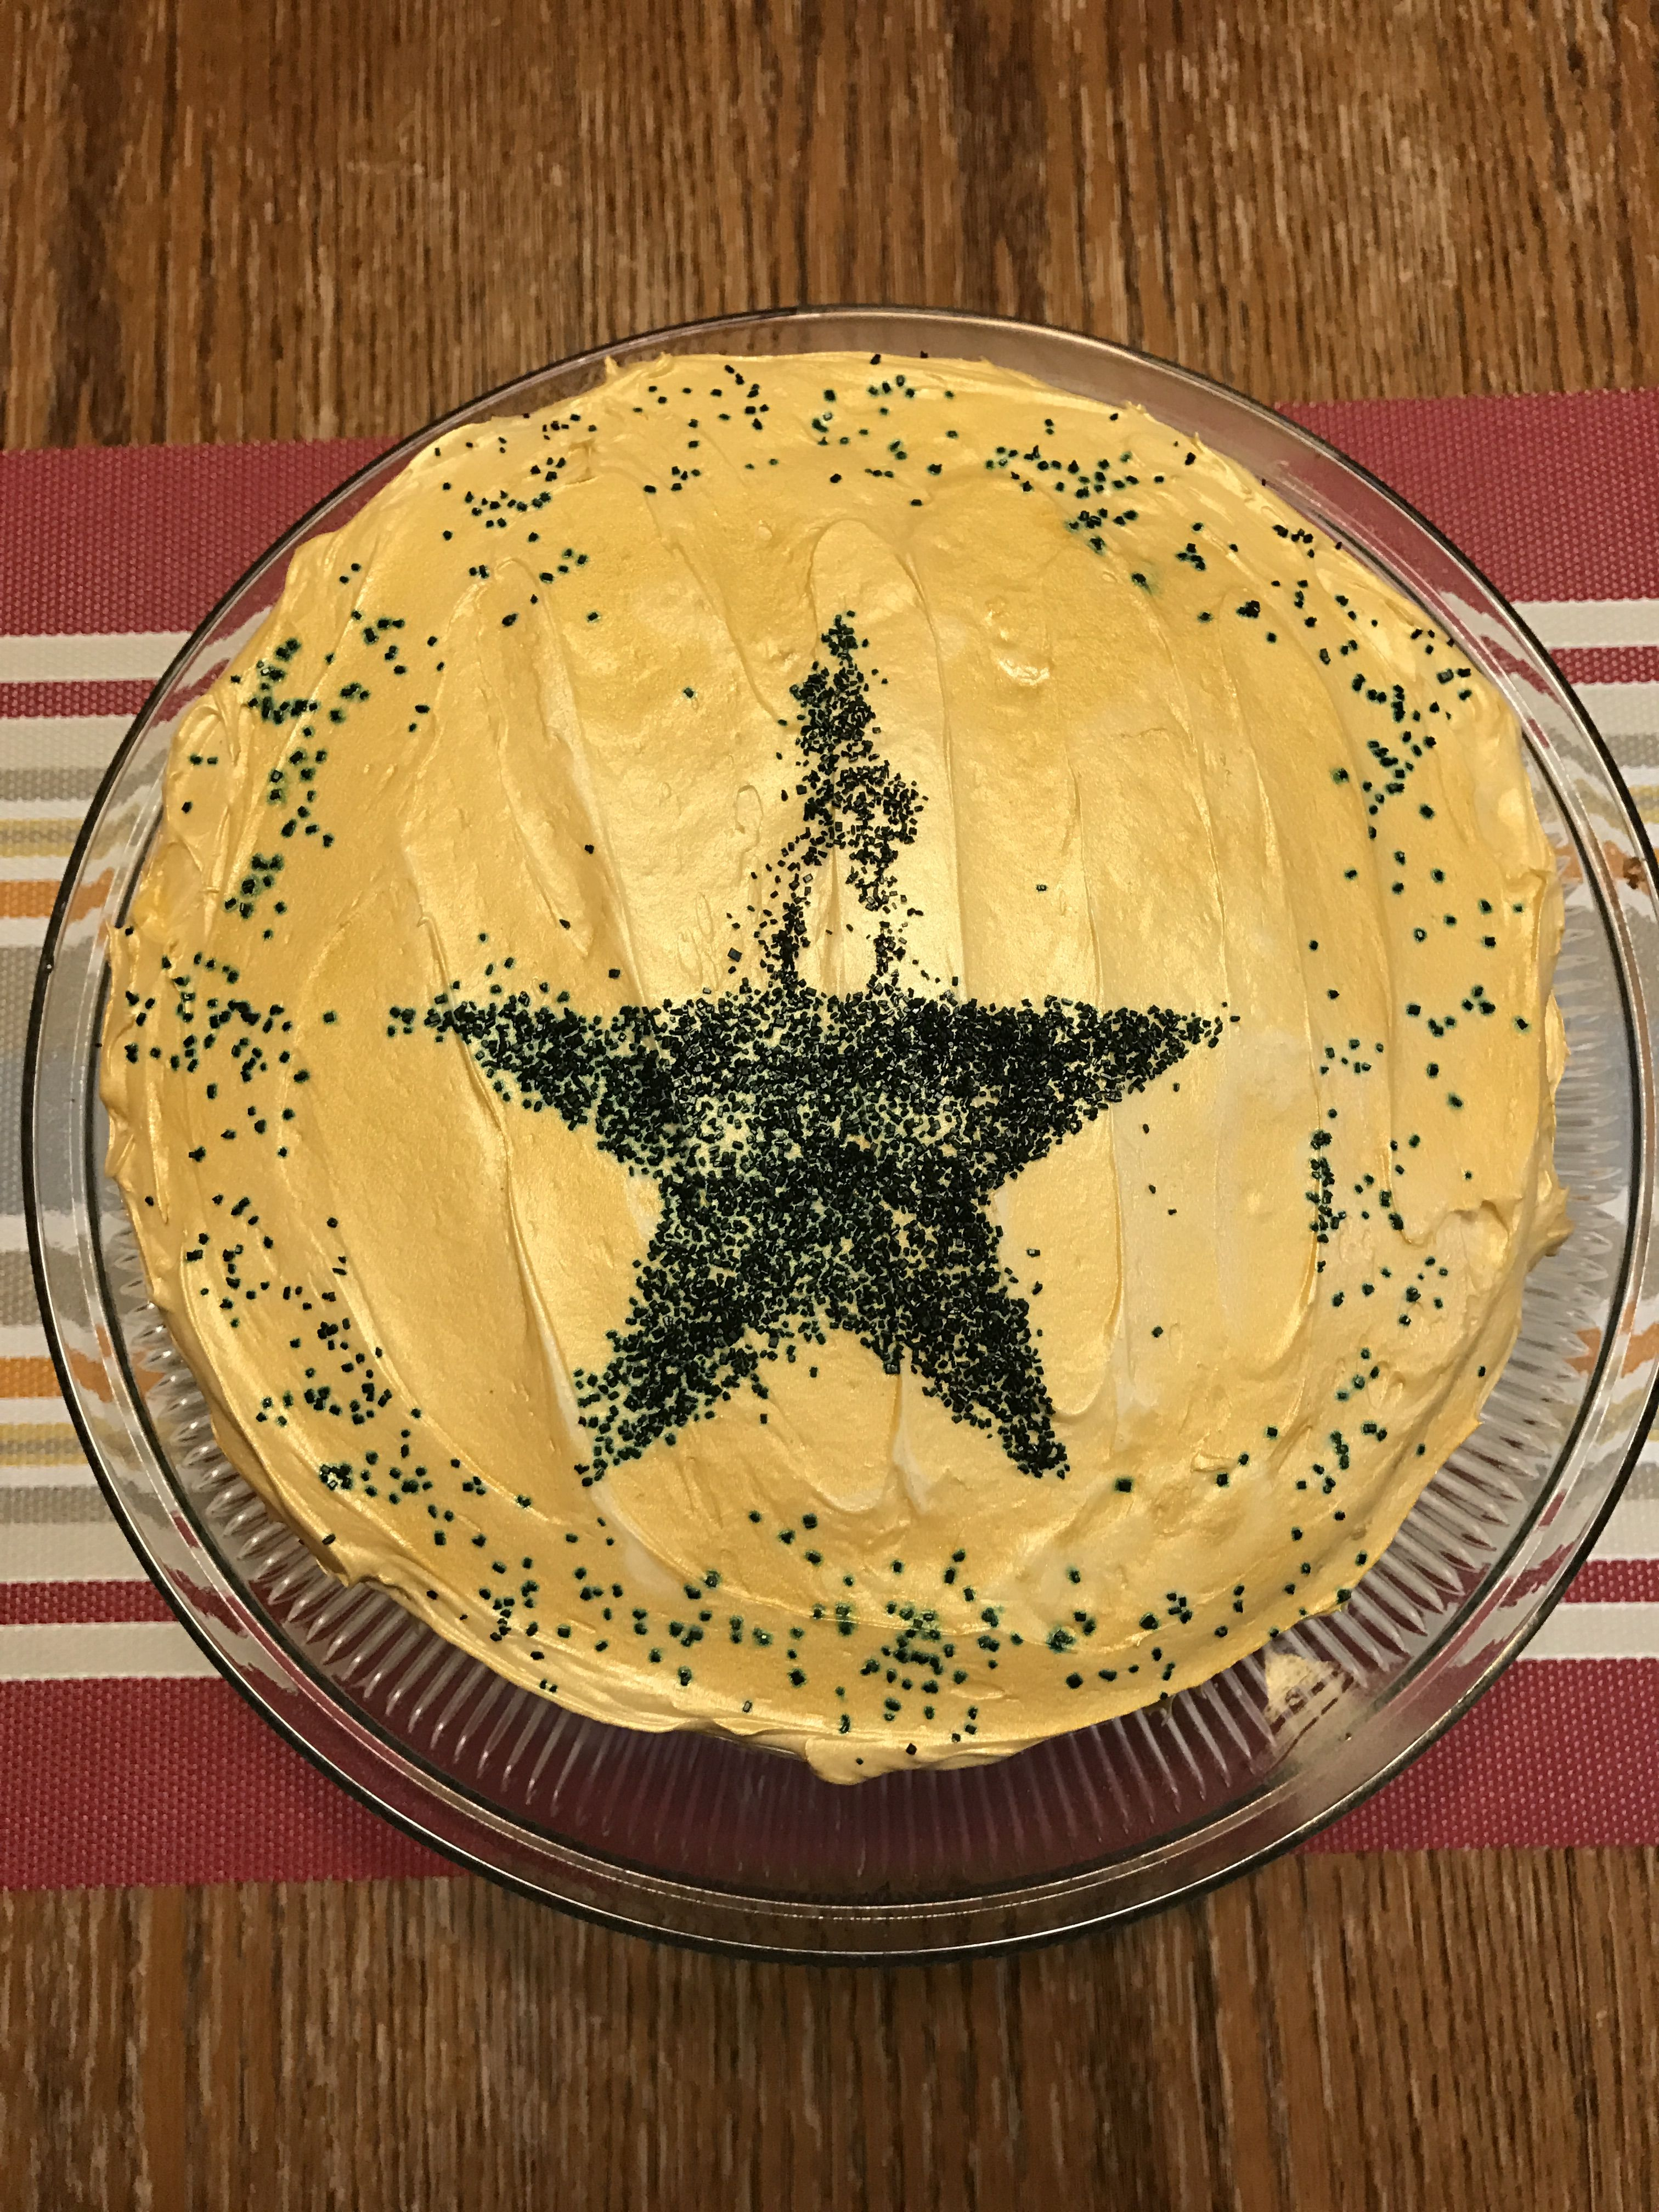 This Would Be Nice With Lemon Flavored Frosting And